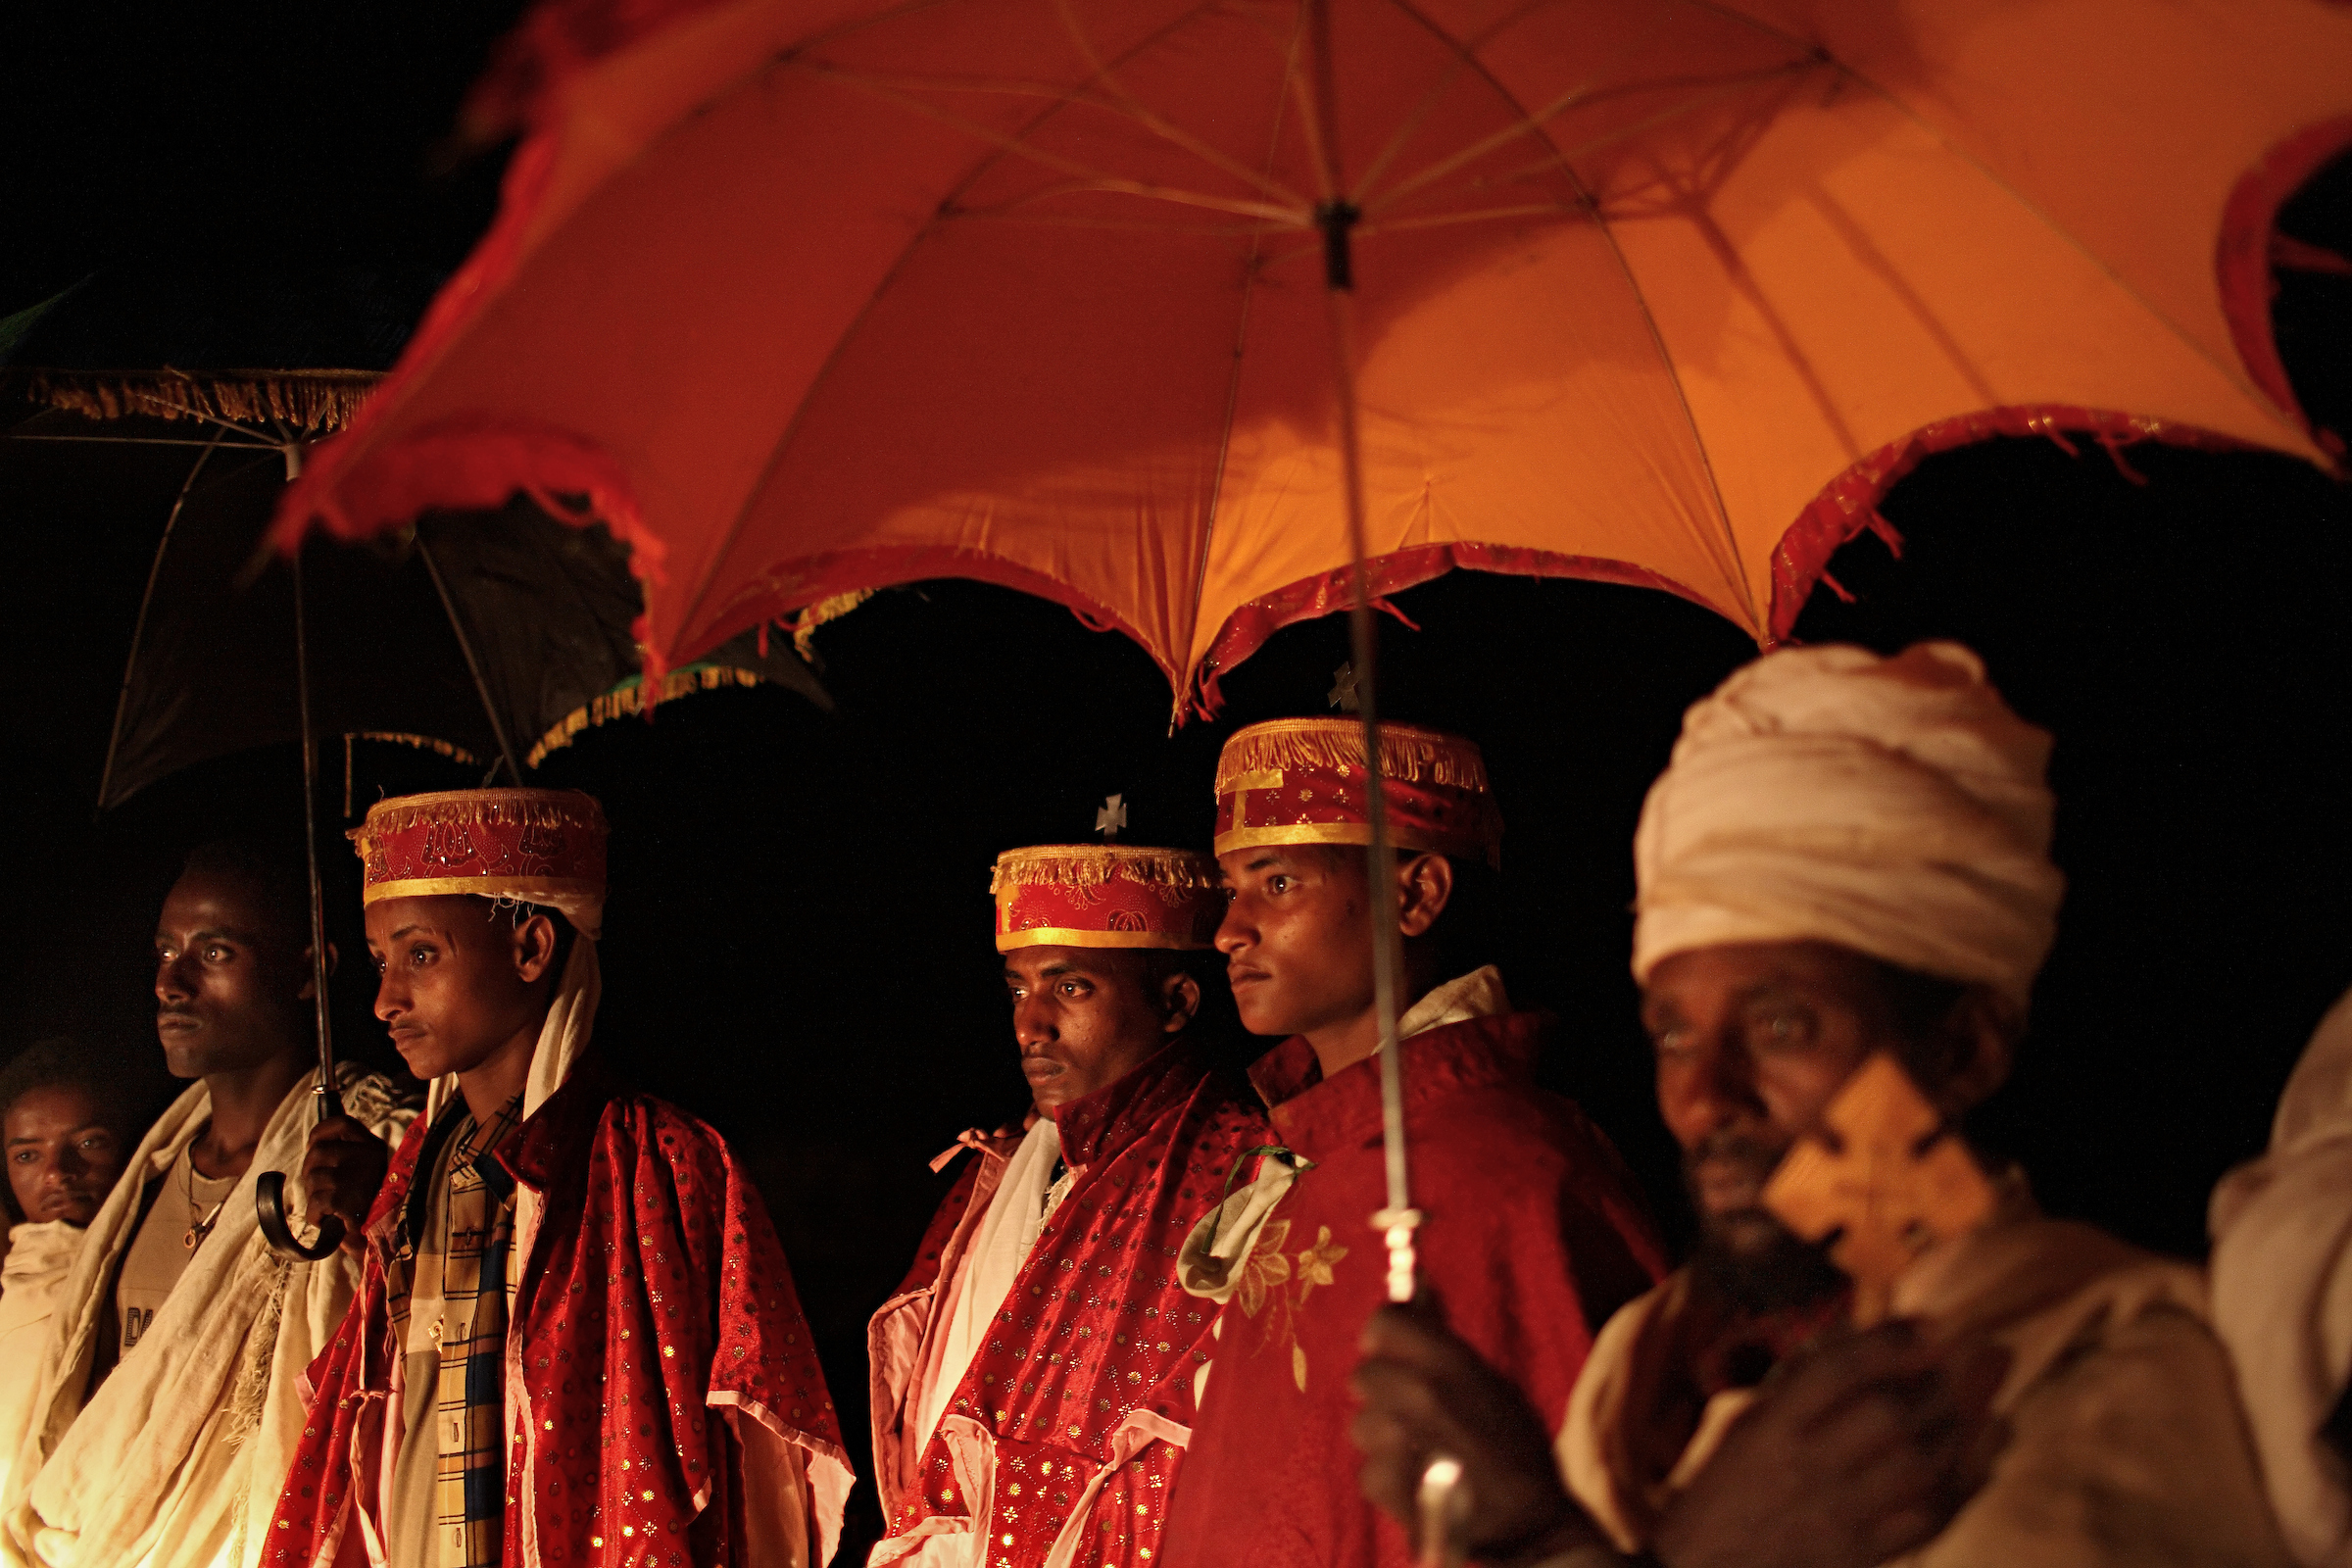 Dressed in traditional Ethiopian Orthodox robes, the wedding party of made up of local priests,including Addisu, 23, walk through the night to pick up his new bride Destaye, 11.